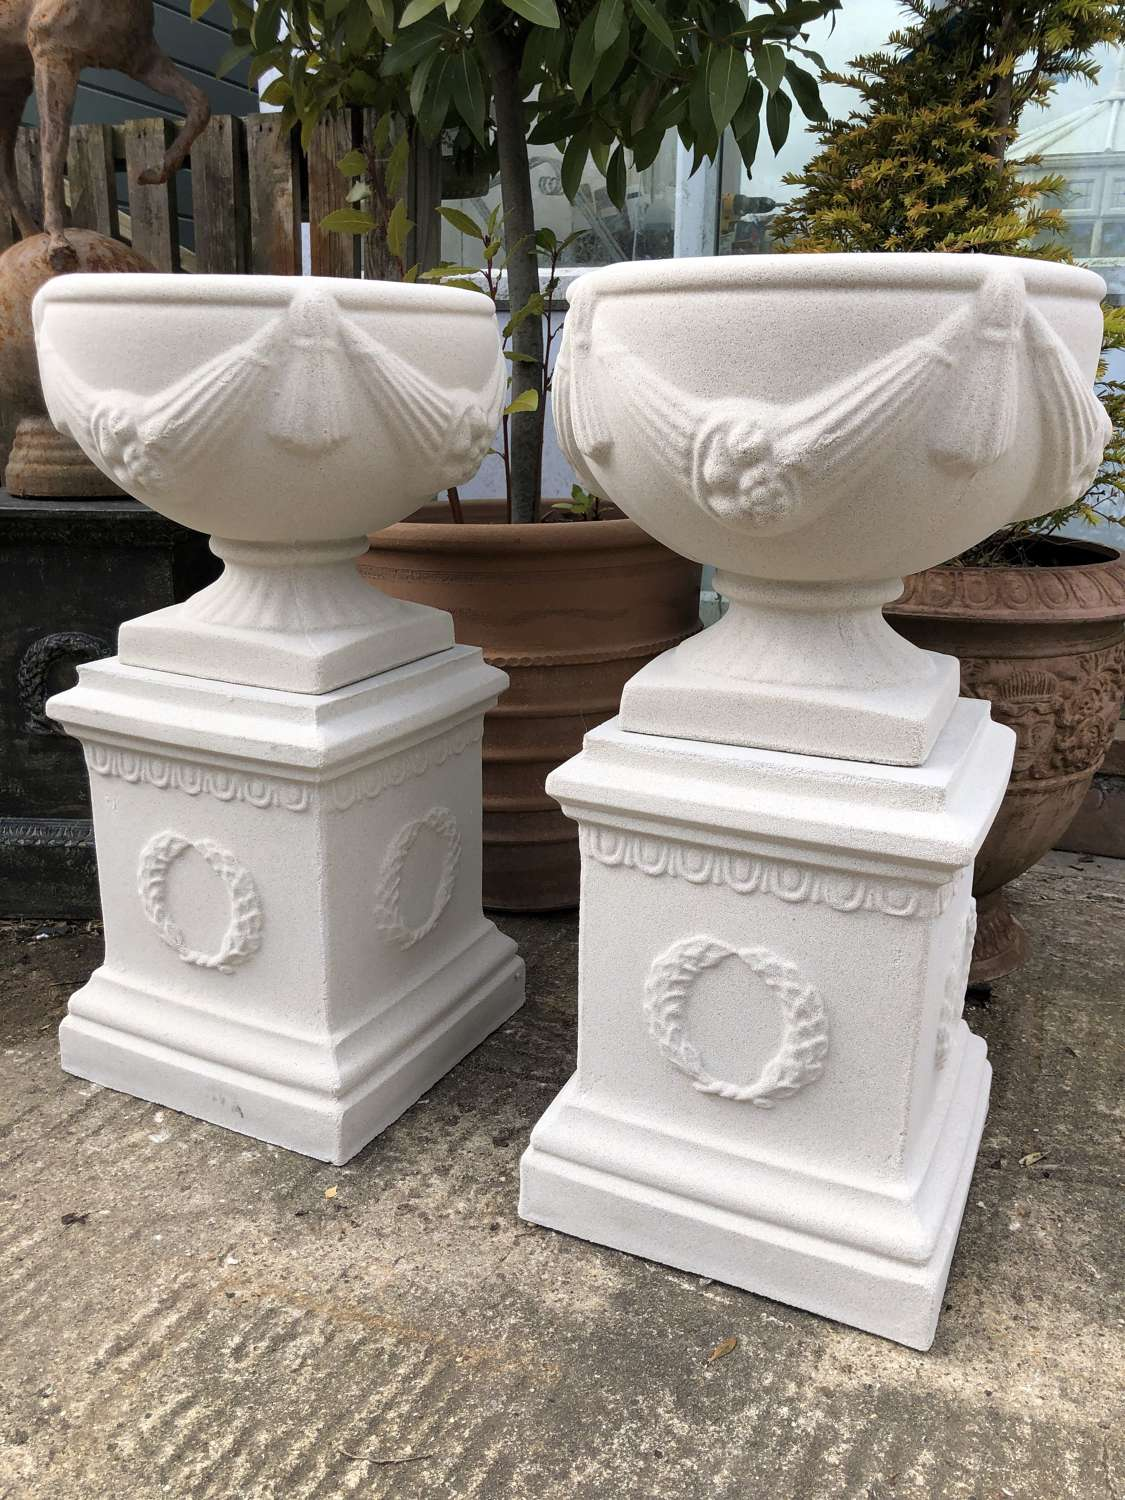 Pair of swagged stone urns on plinths (Portland colour)